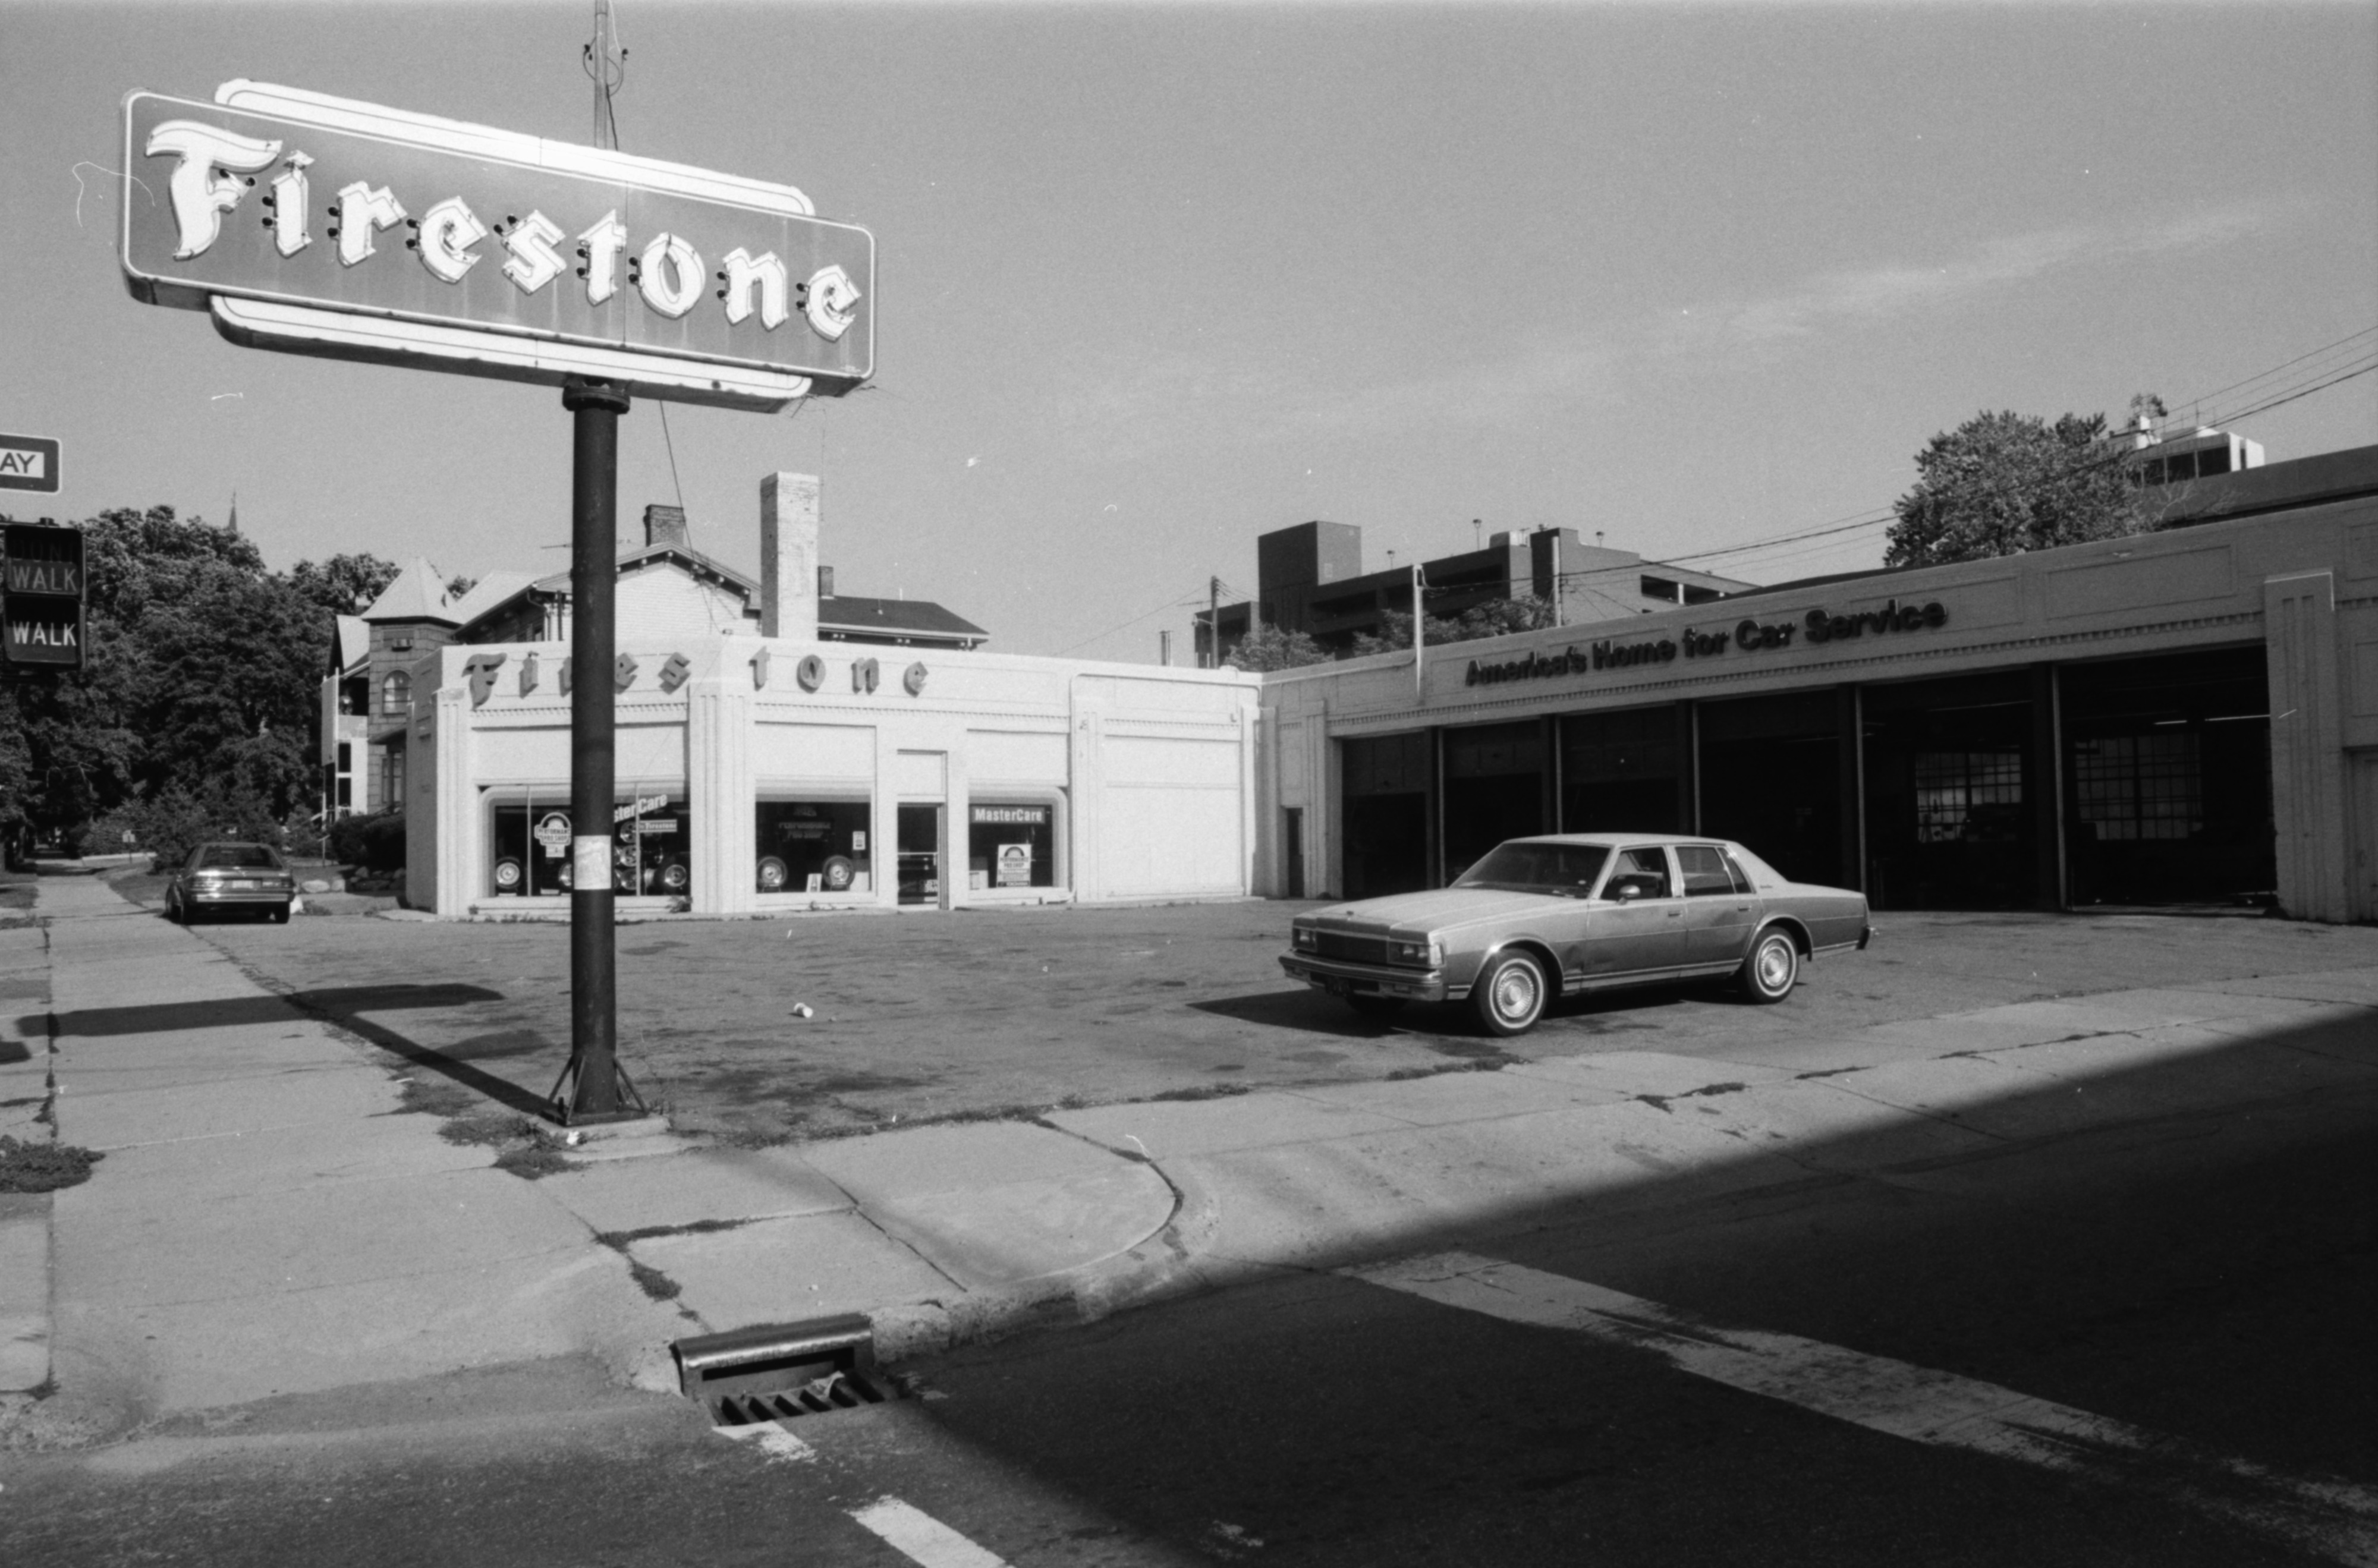 Firestone Station, August 1988 image